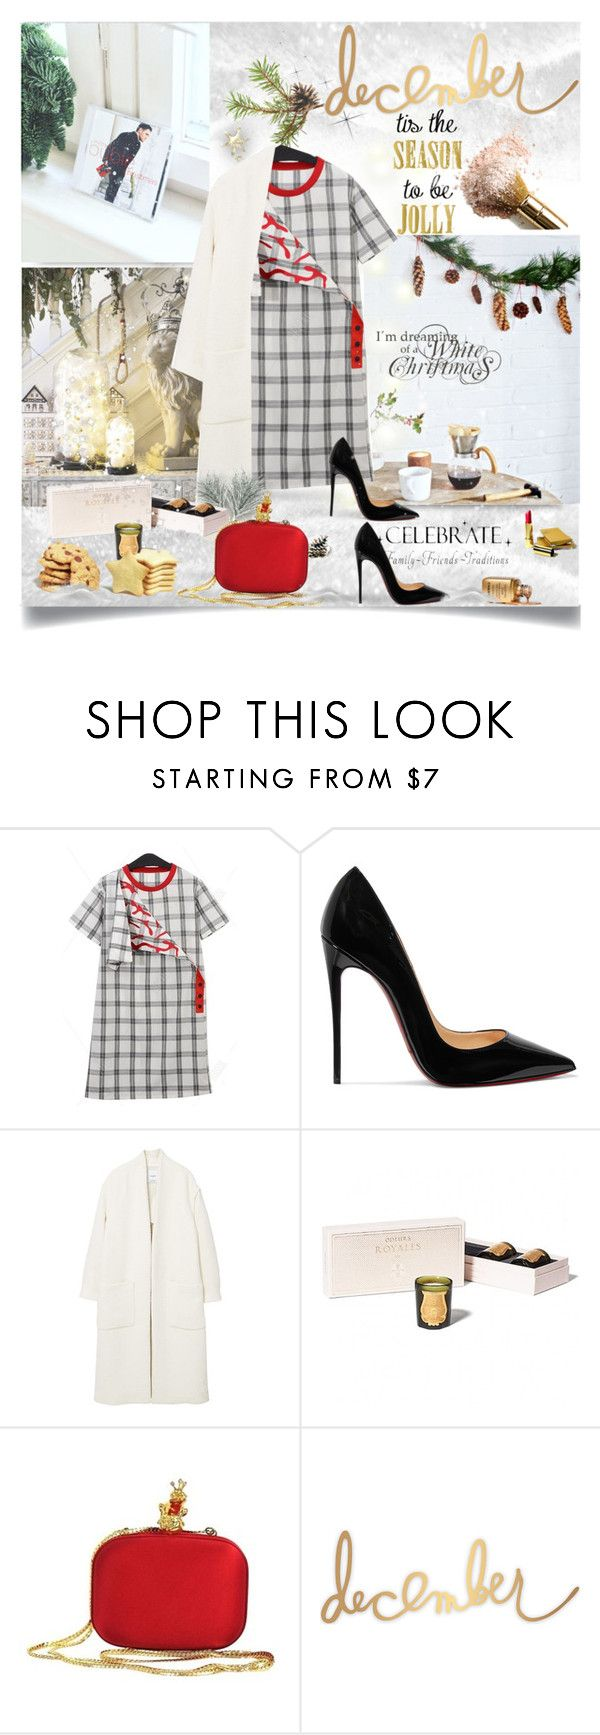 """""""Jolly December"""" by monika-jall ❤ liked on Polyvore featuring Christian Louboutin, MANGO, Cire, Moschino, Heidi Swapp and WALL"""